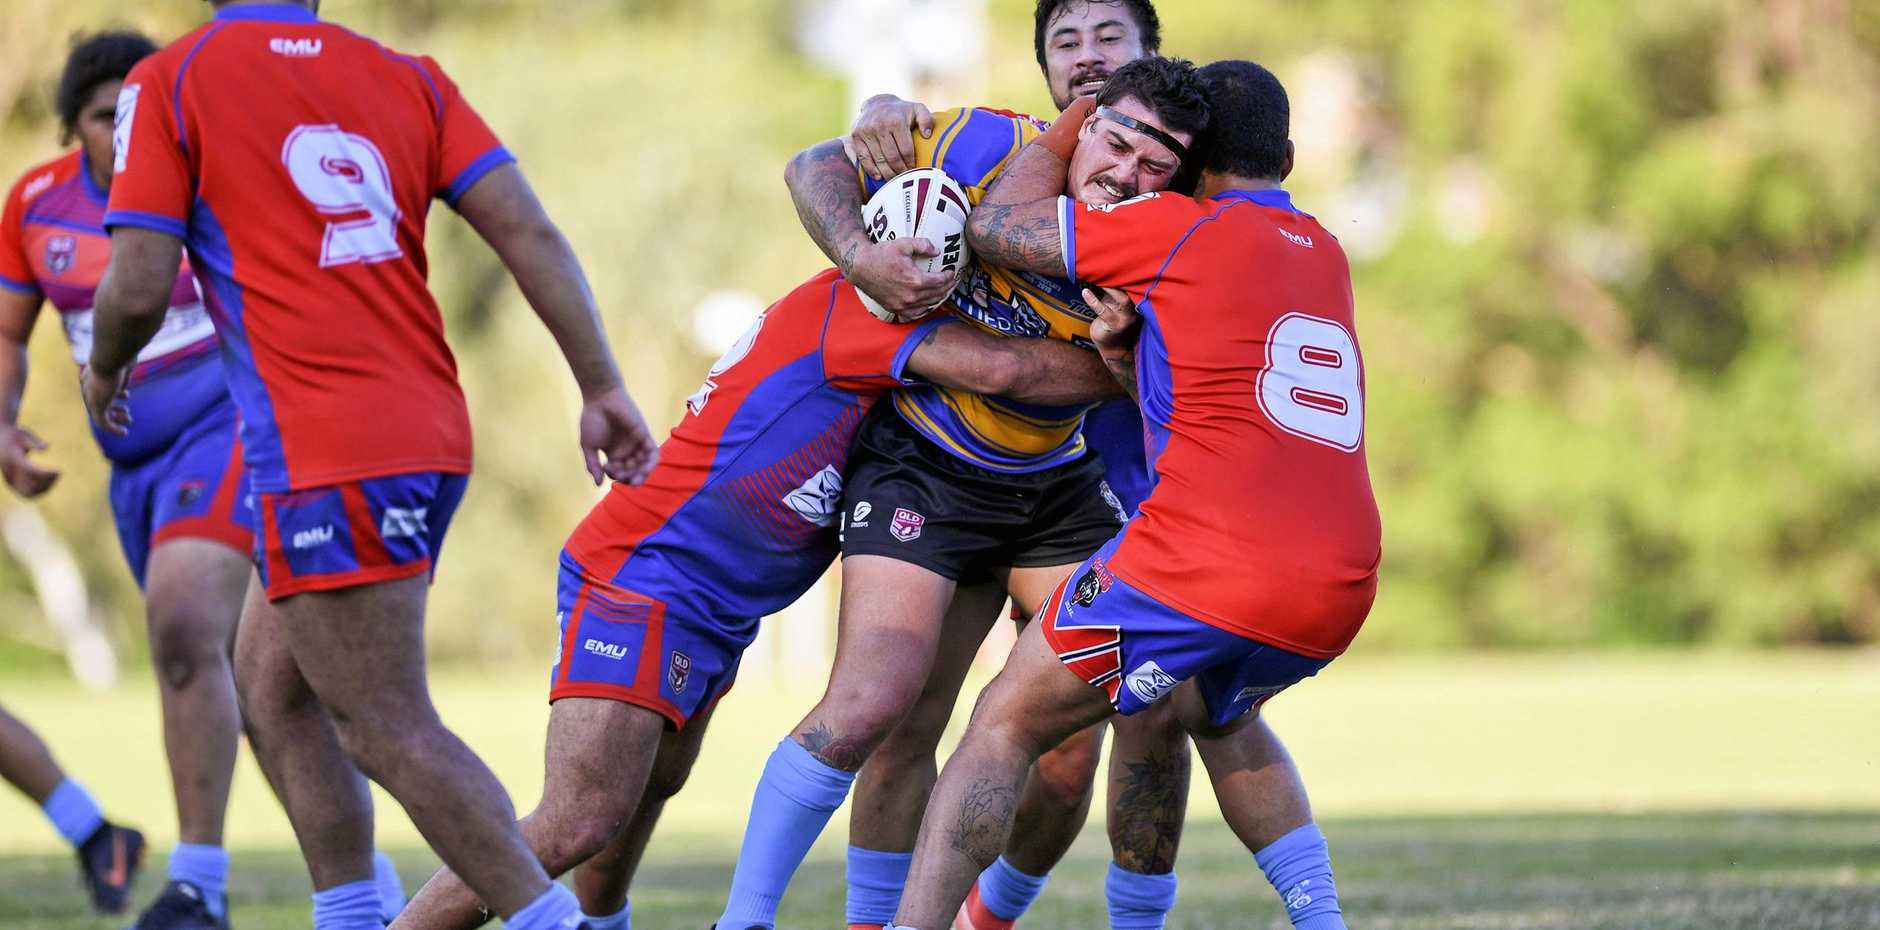 DETERMINED DEFENCE: The Redbank Plains tacklers stop Norths forward Blake Olive in Sunday's A-Grade match at Keith Sternberg Oval. The Bears beat the Tigers 40-12.